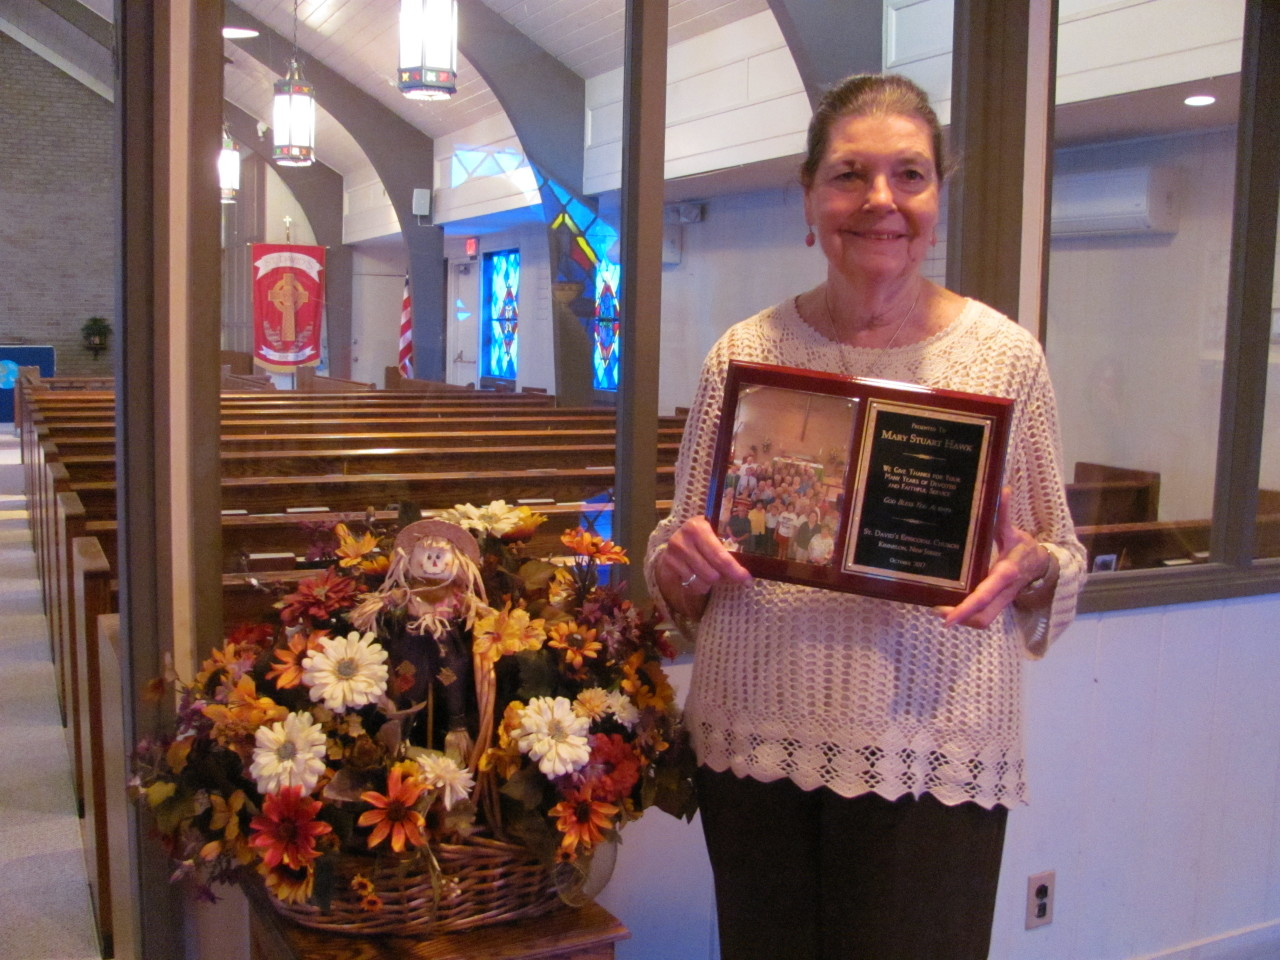 A parishioner is honored for years of faithful service as she moves away